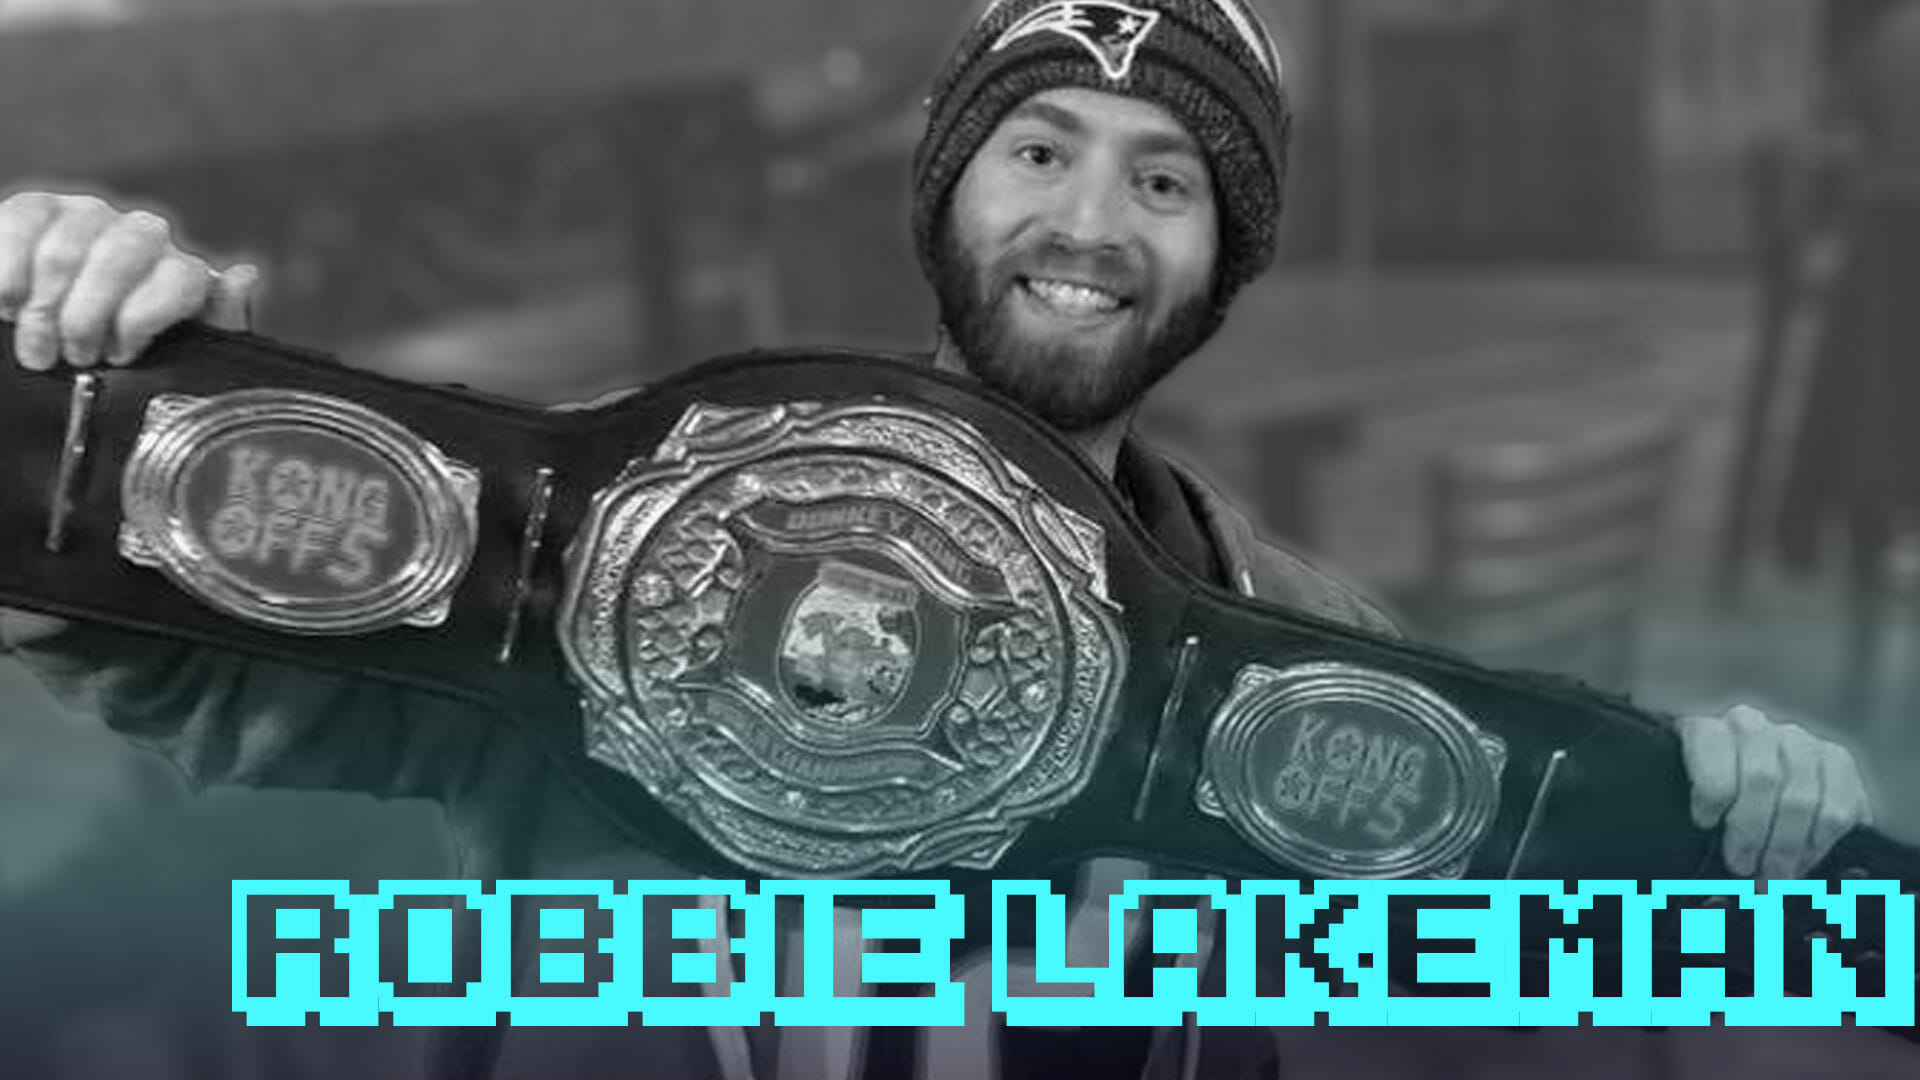 Robbie Lakeman - Donkey Kong World Champion